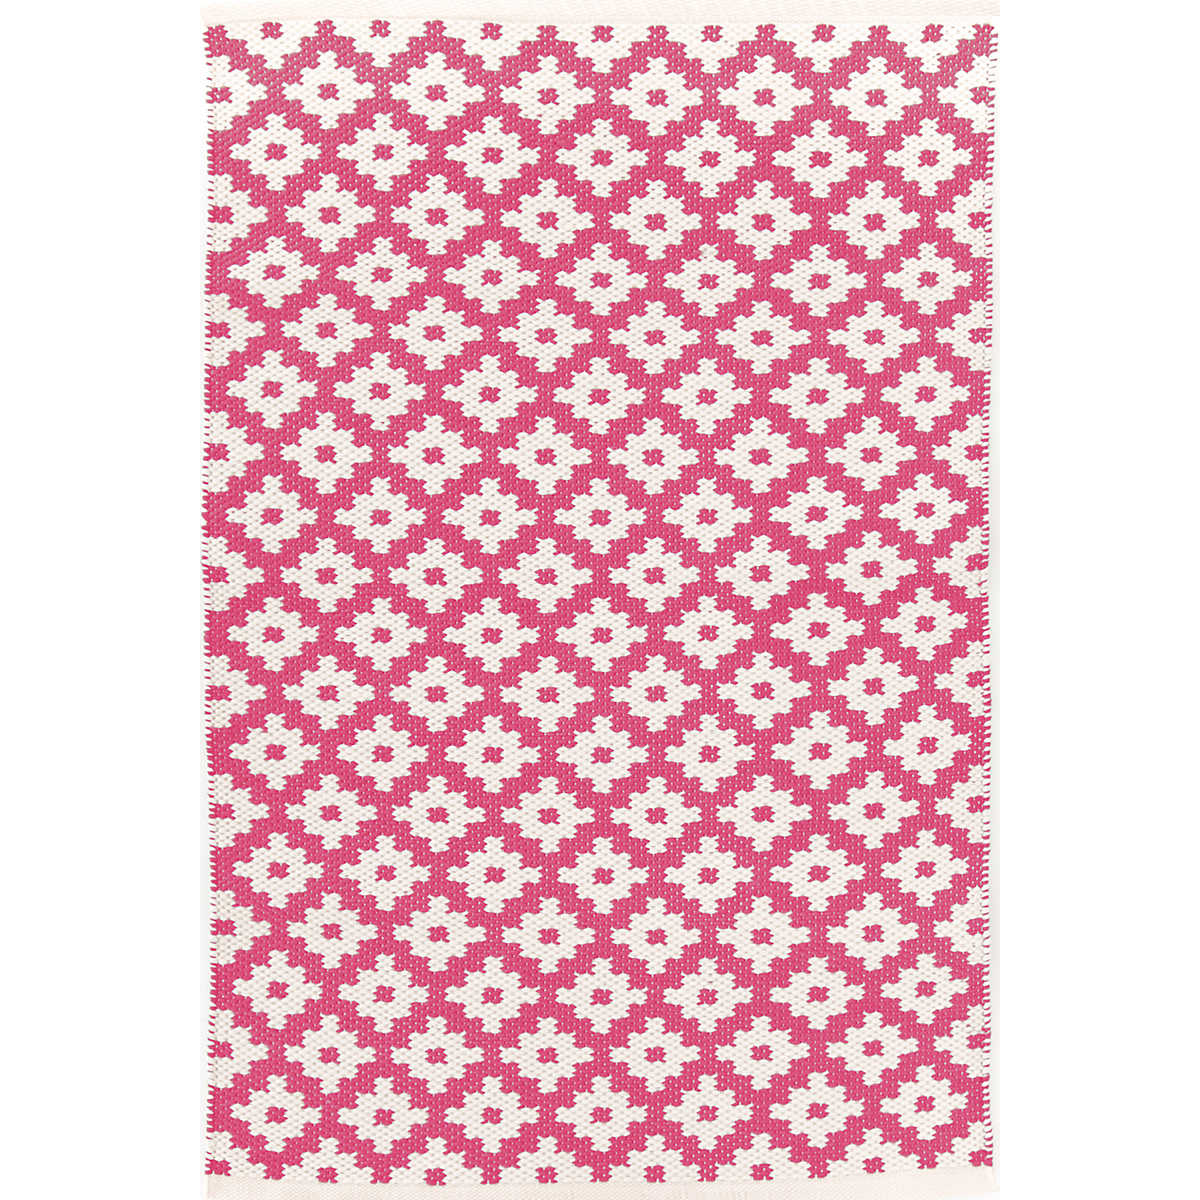 Samode Fuchsia Ivory Indoor Outdoor Rug The Outlet